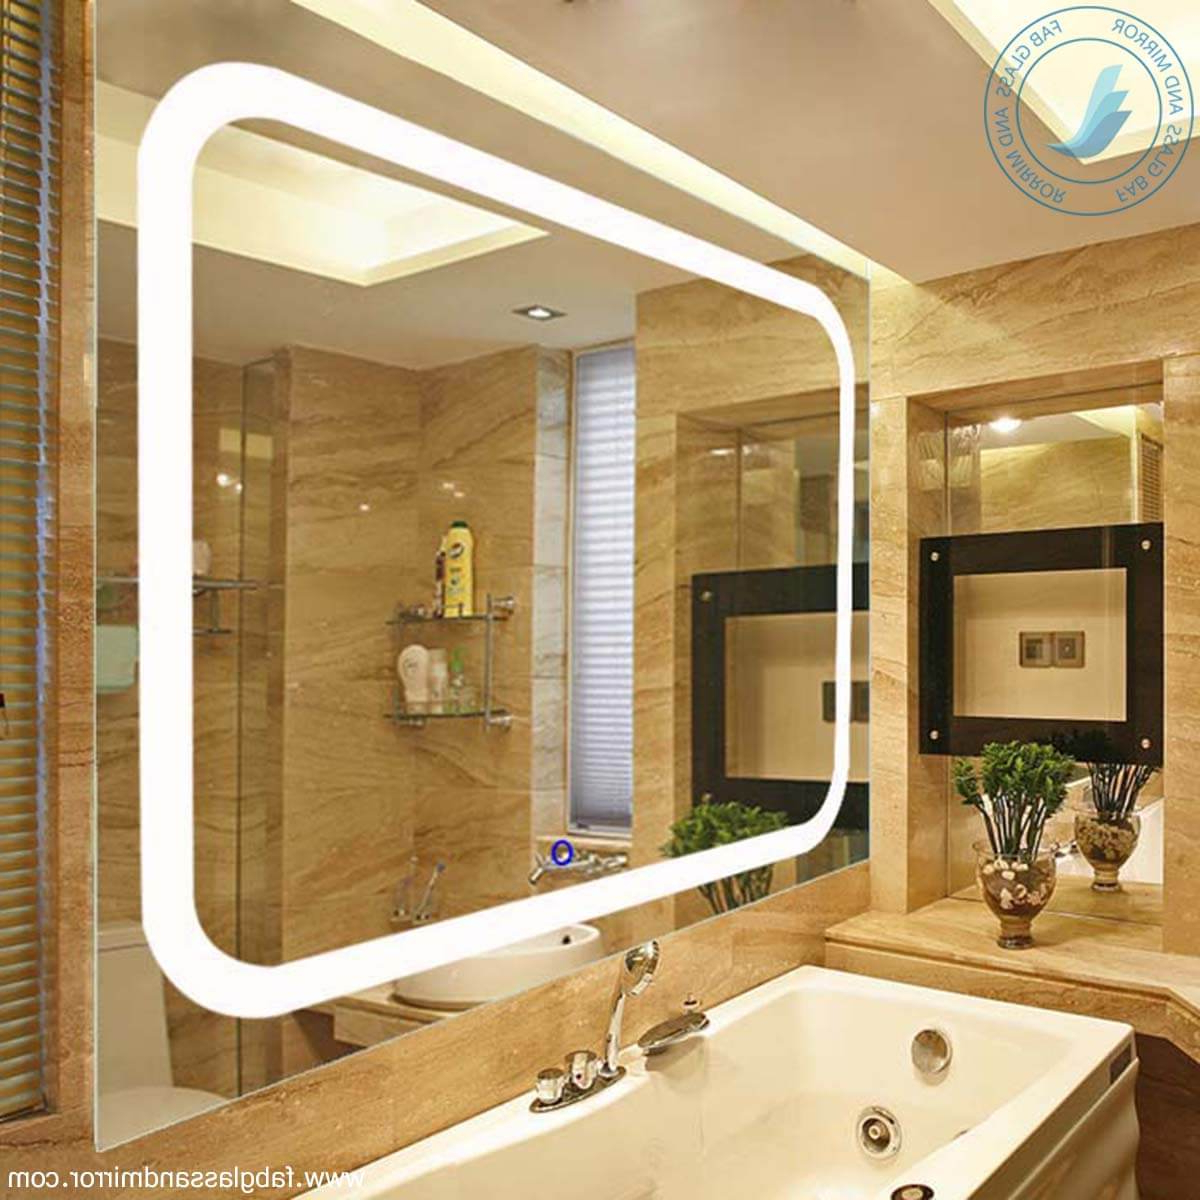 Led Wall Mirrors Inside 2019 Modern Led Wall Mirrors, Bathroom Led Lighted Wall Mirror – Wall Mounted (View 8 of 20)